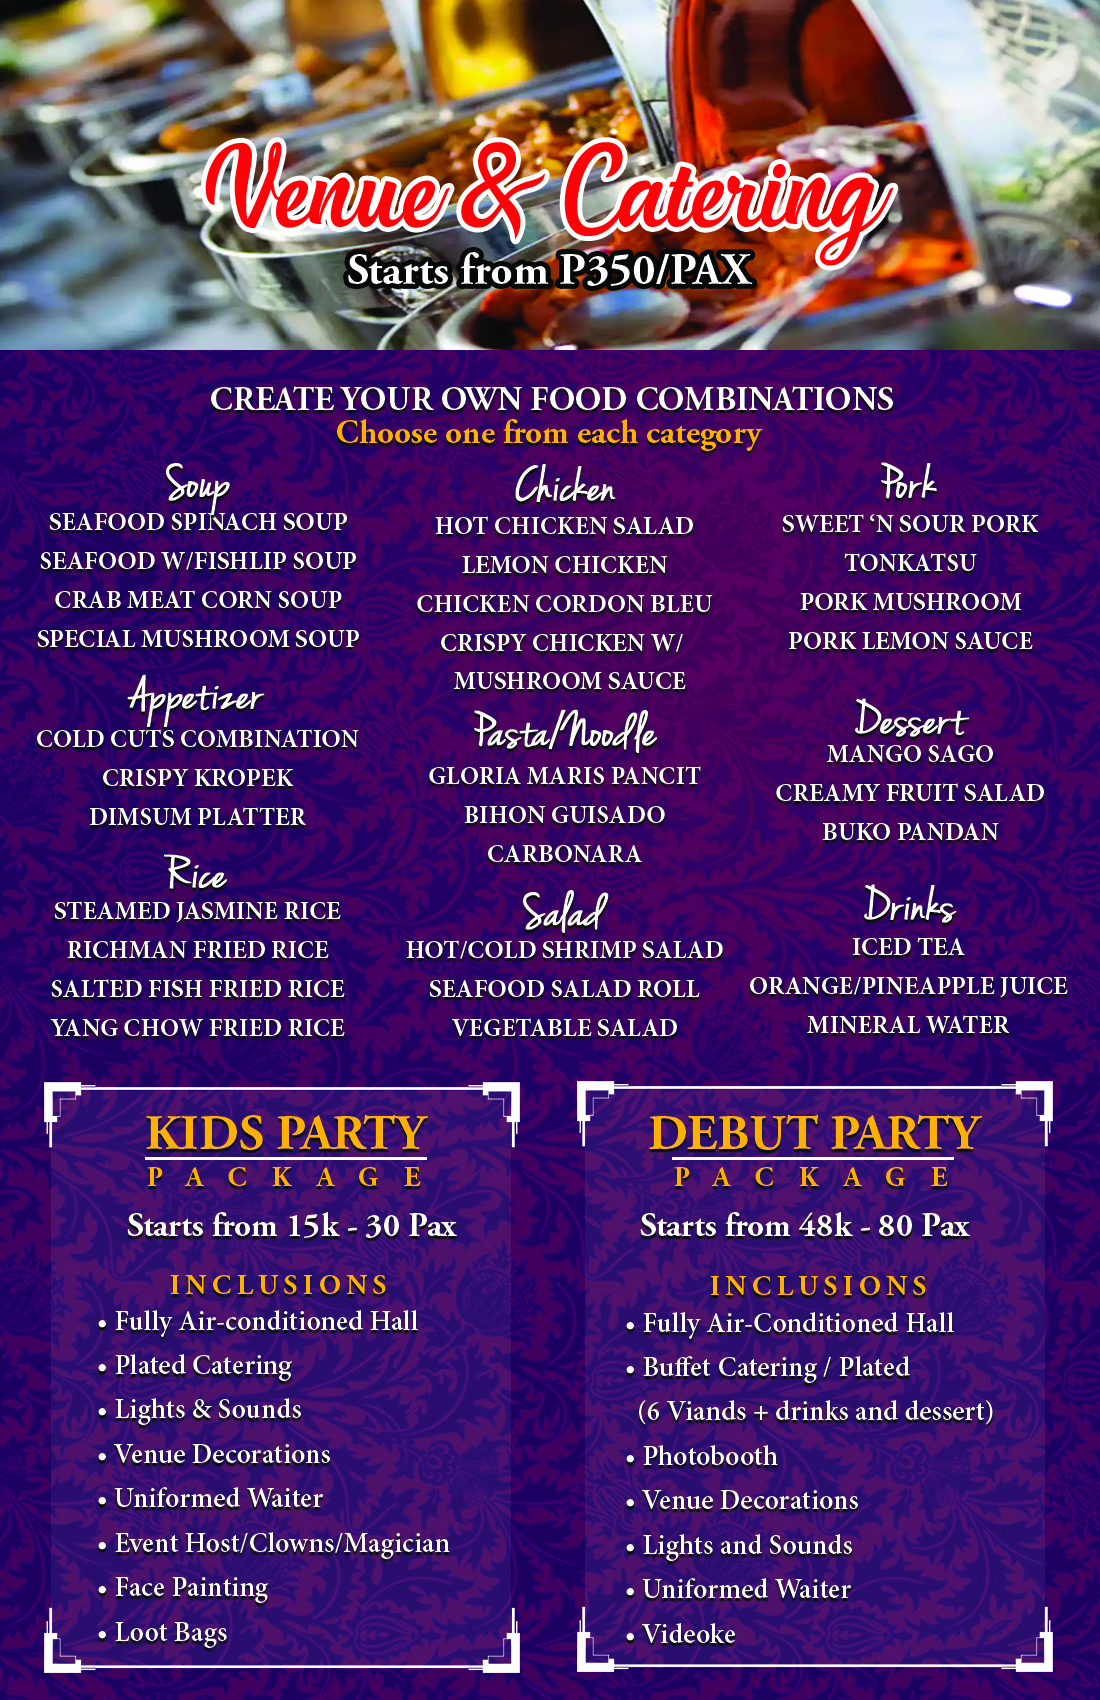 kids Party and Debut Party Packages